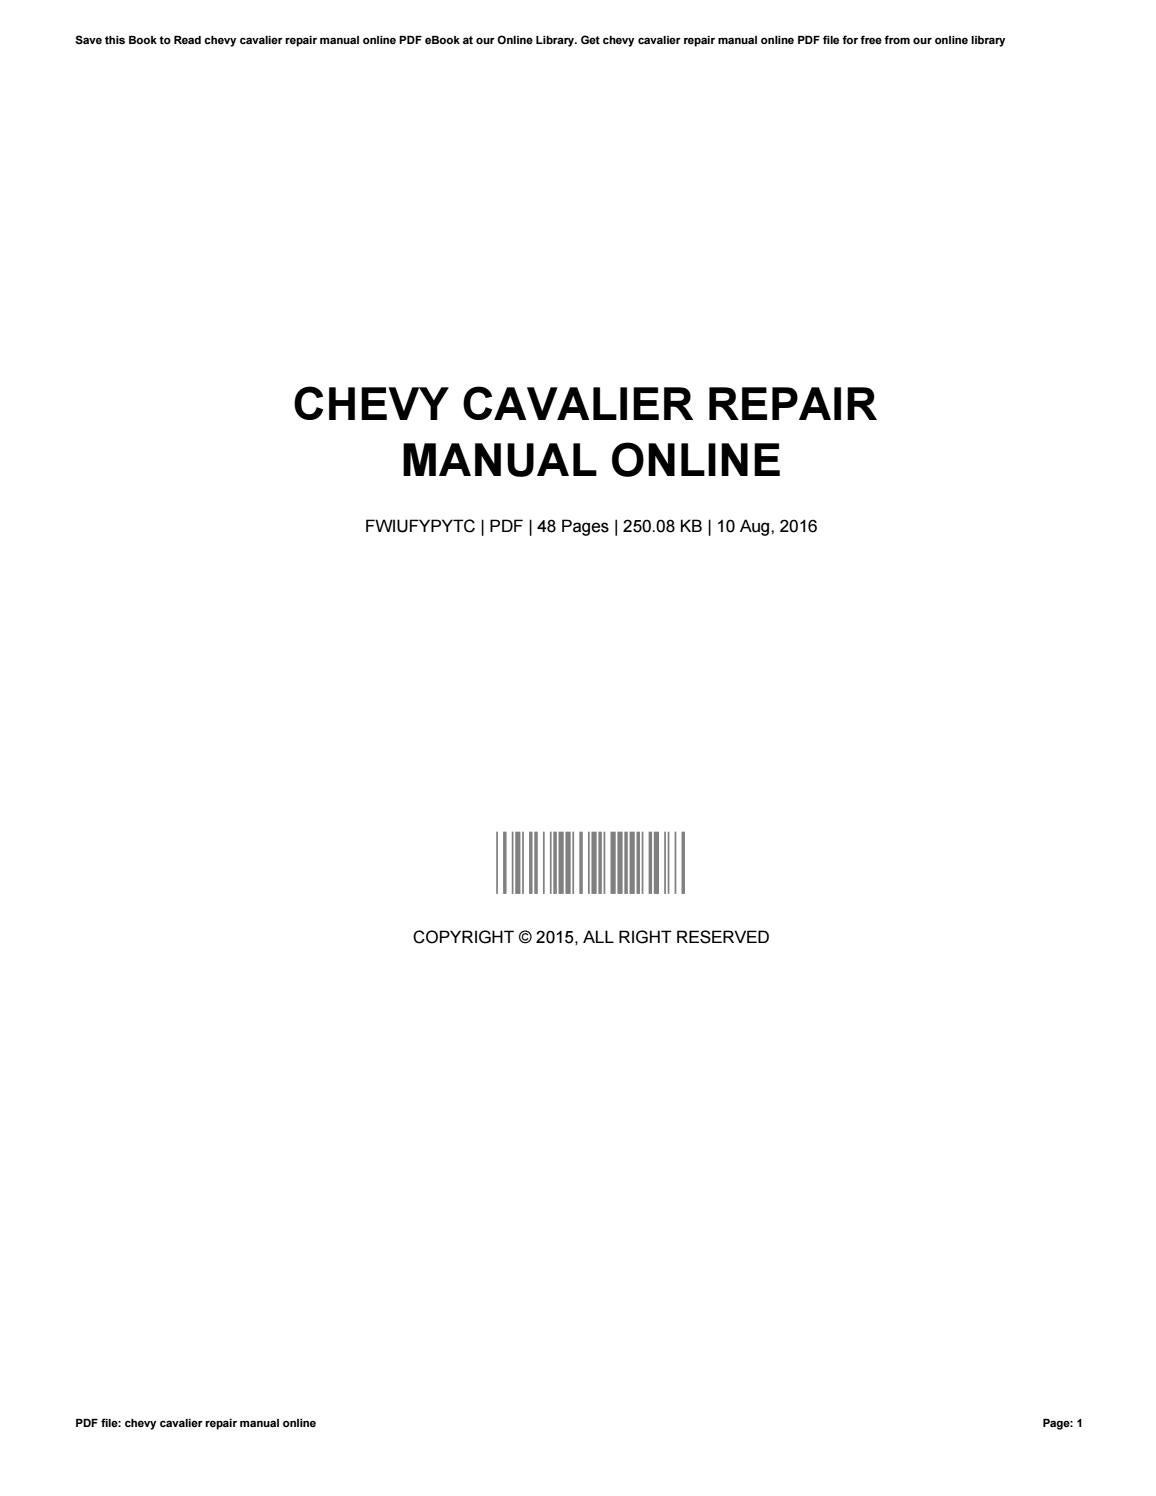 Chevy cavalier repair manual online by DaphneHagen1304 - Issuu